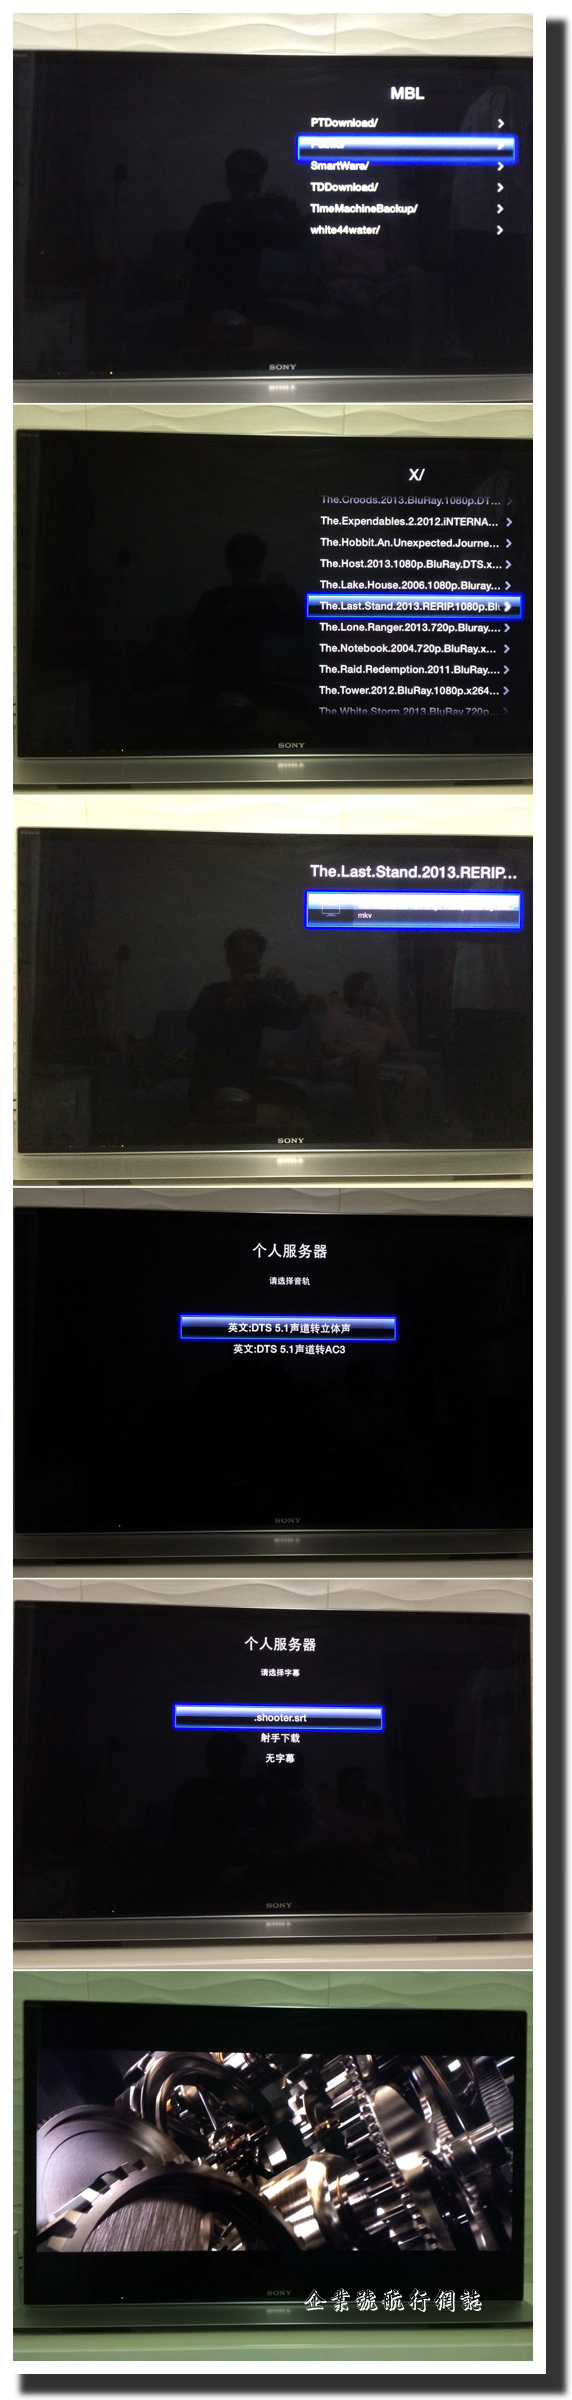 apple tv my book live play mkv